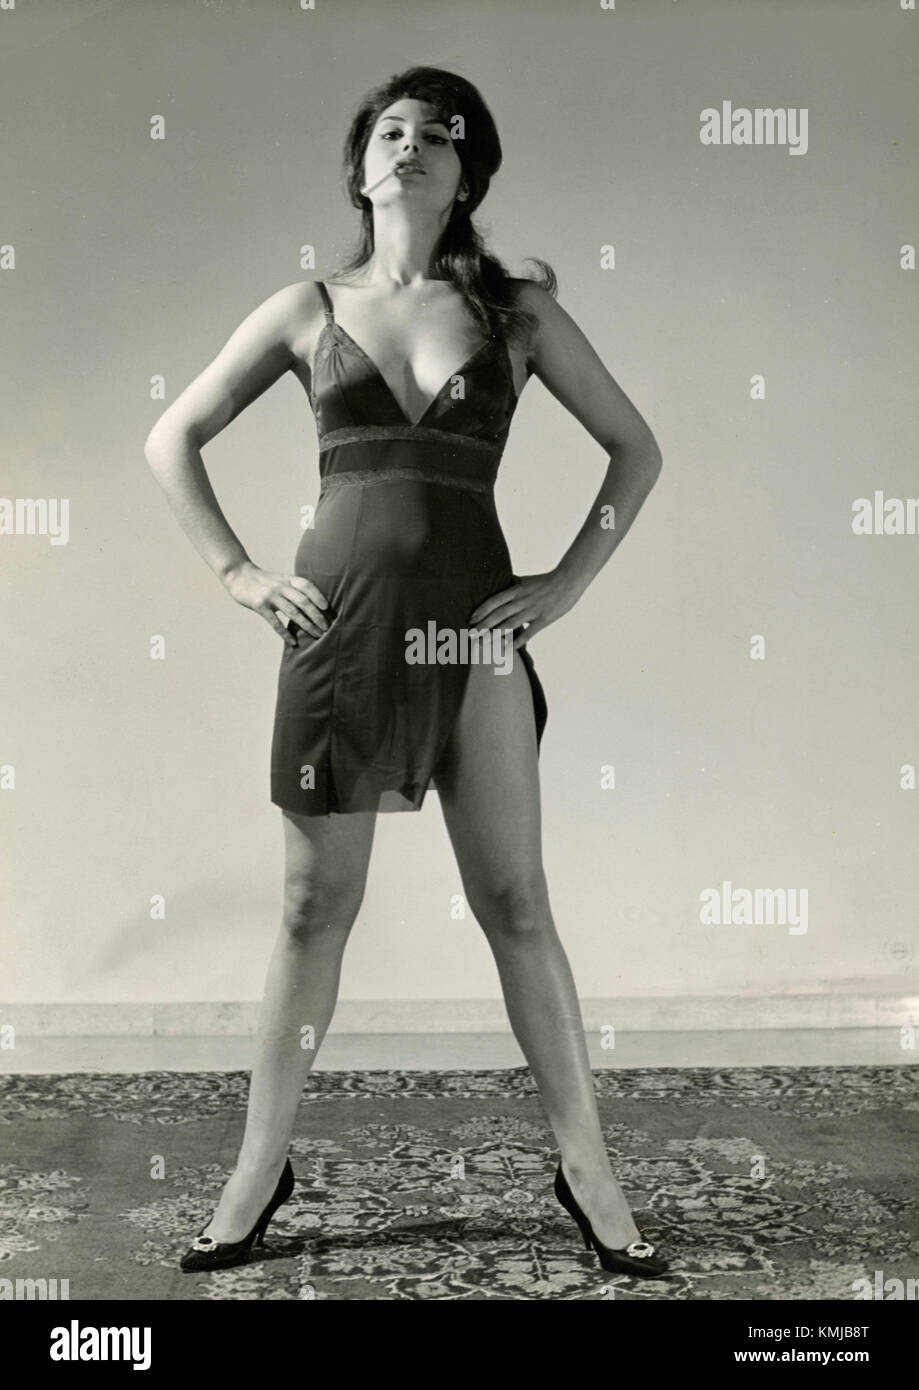 Model-actress from the 1960s posing - Stock Image